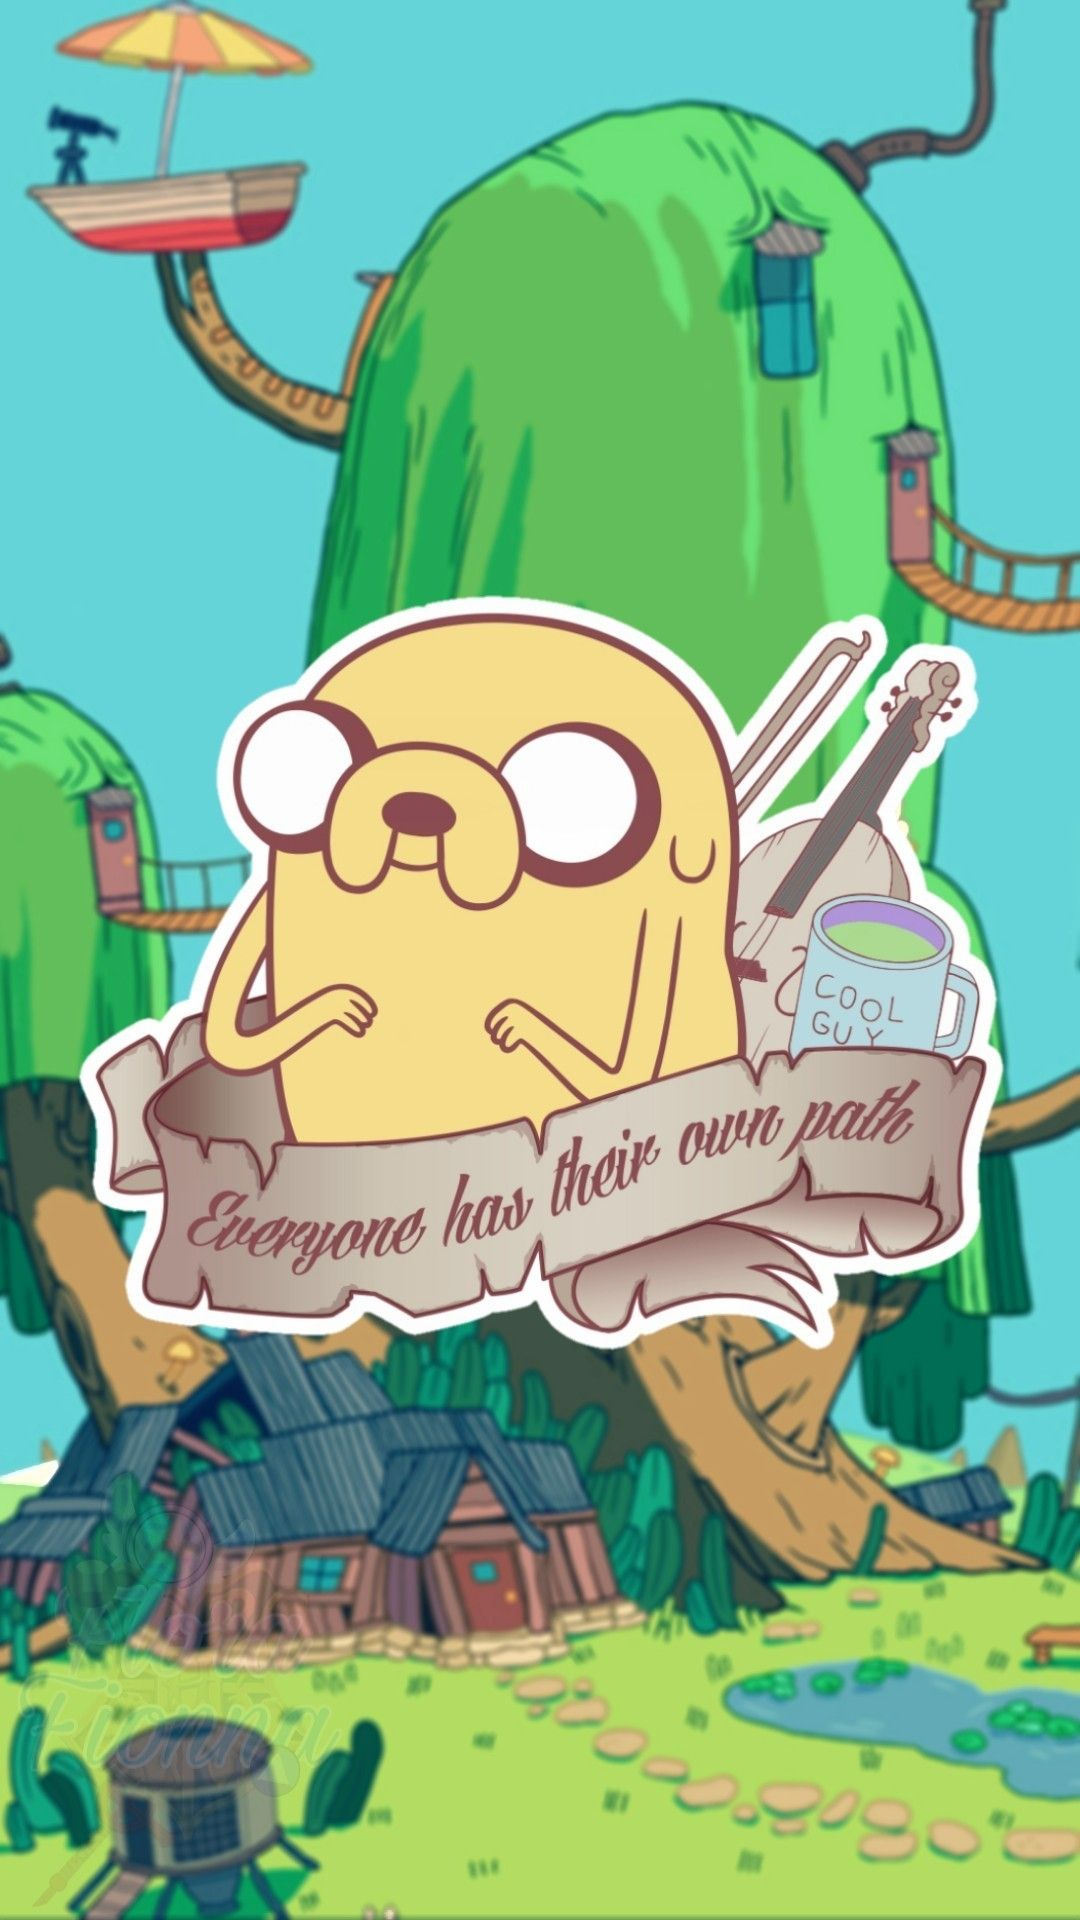 Aesthetic Adventure Time Wallpaper Android Download In 2020 Android Wallpaper Adventure Time Adventure Time Wallpaper